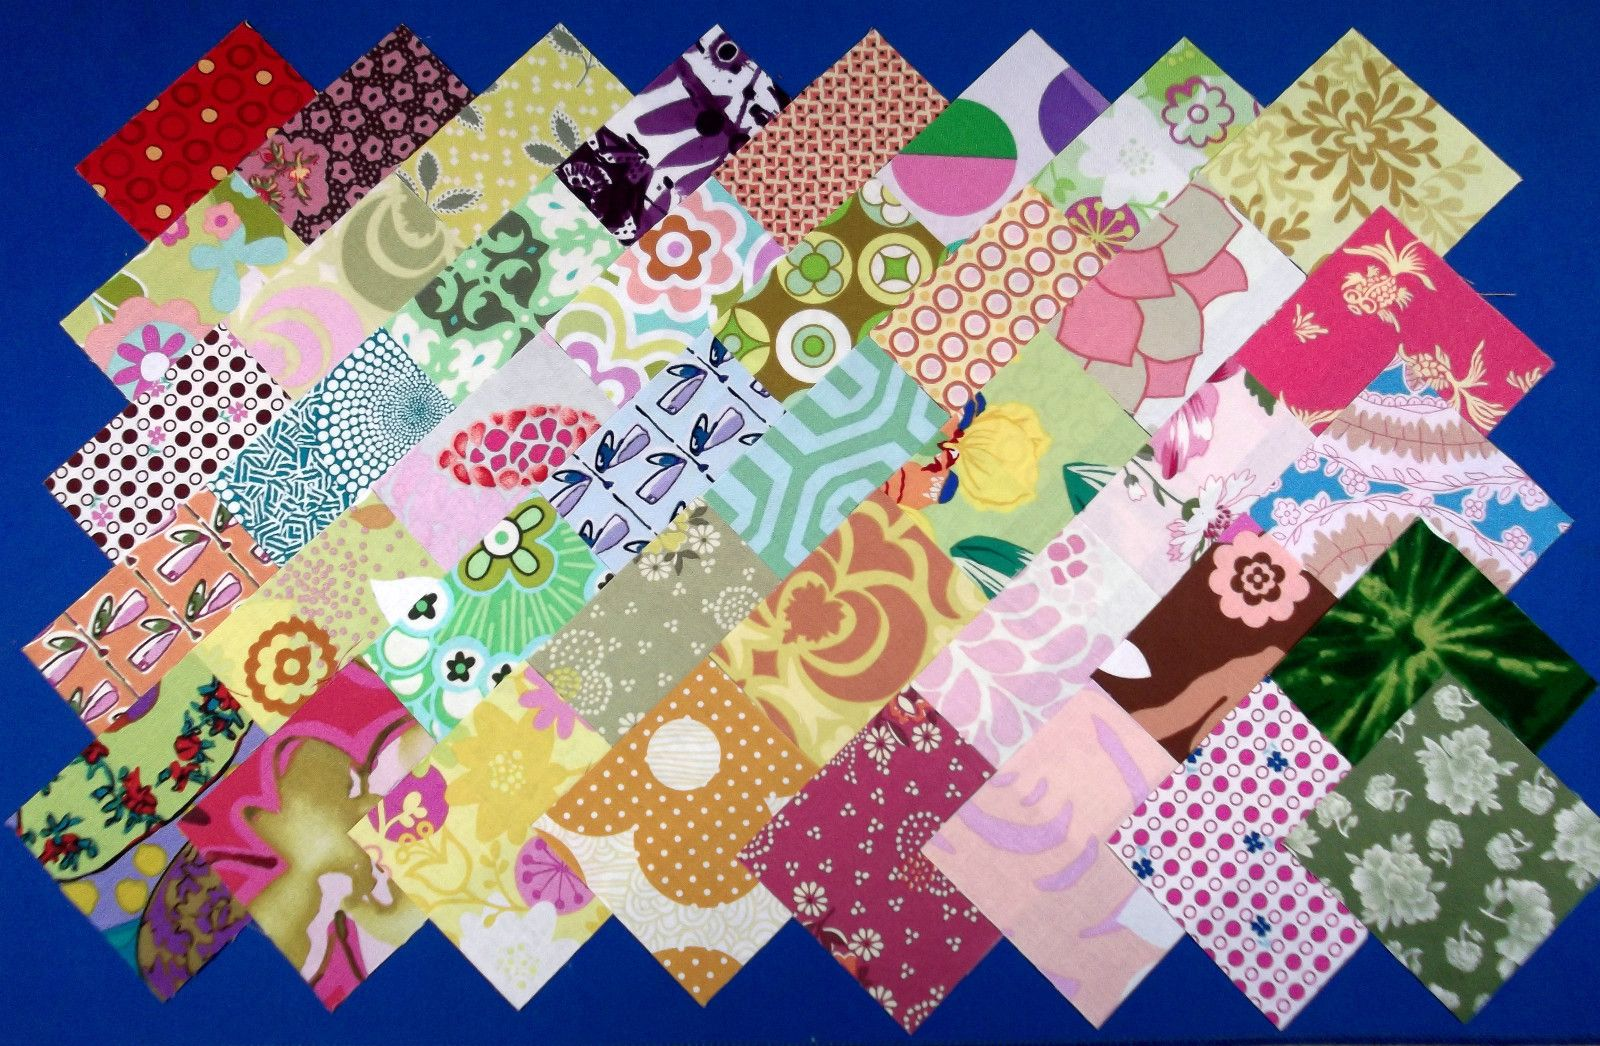 from lane fabric quilting a jill find to quilt guide on cotton s material category where site sampeng